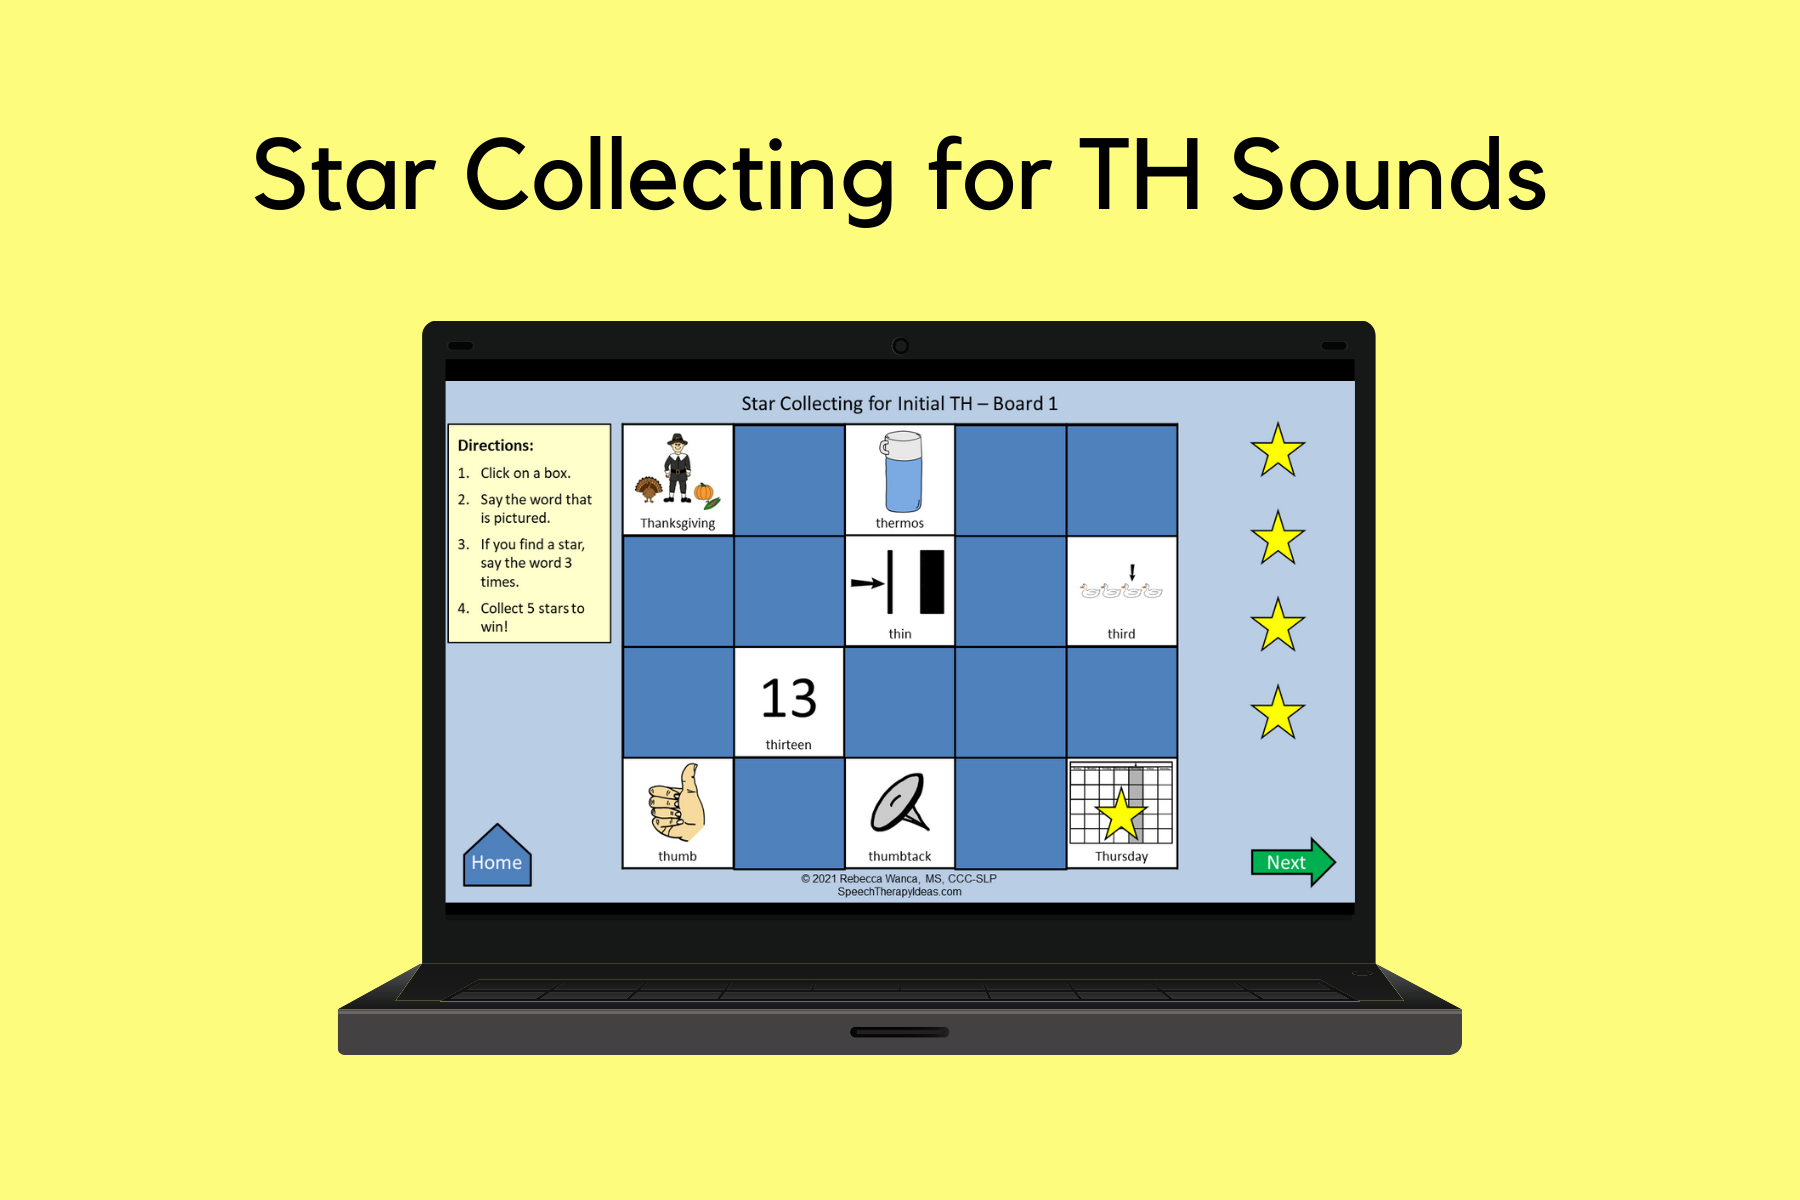 Star Collecting for TH Sounds